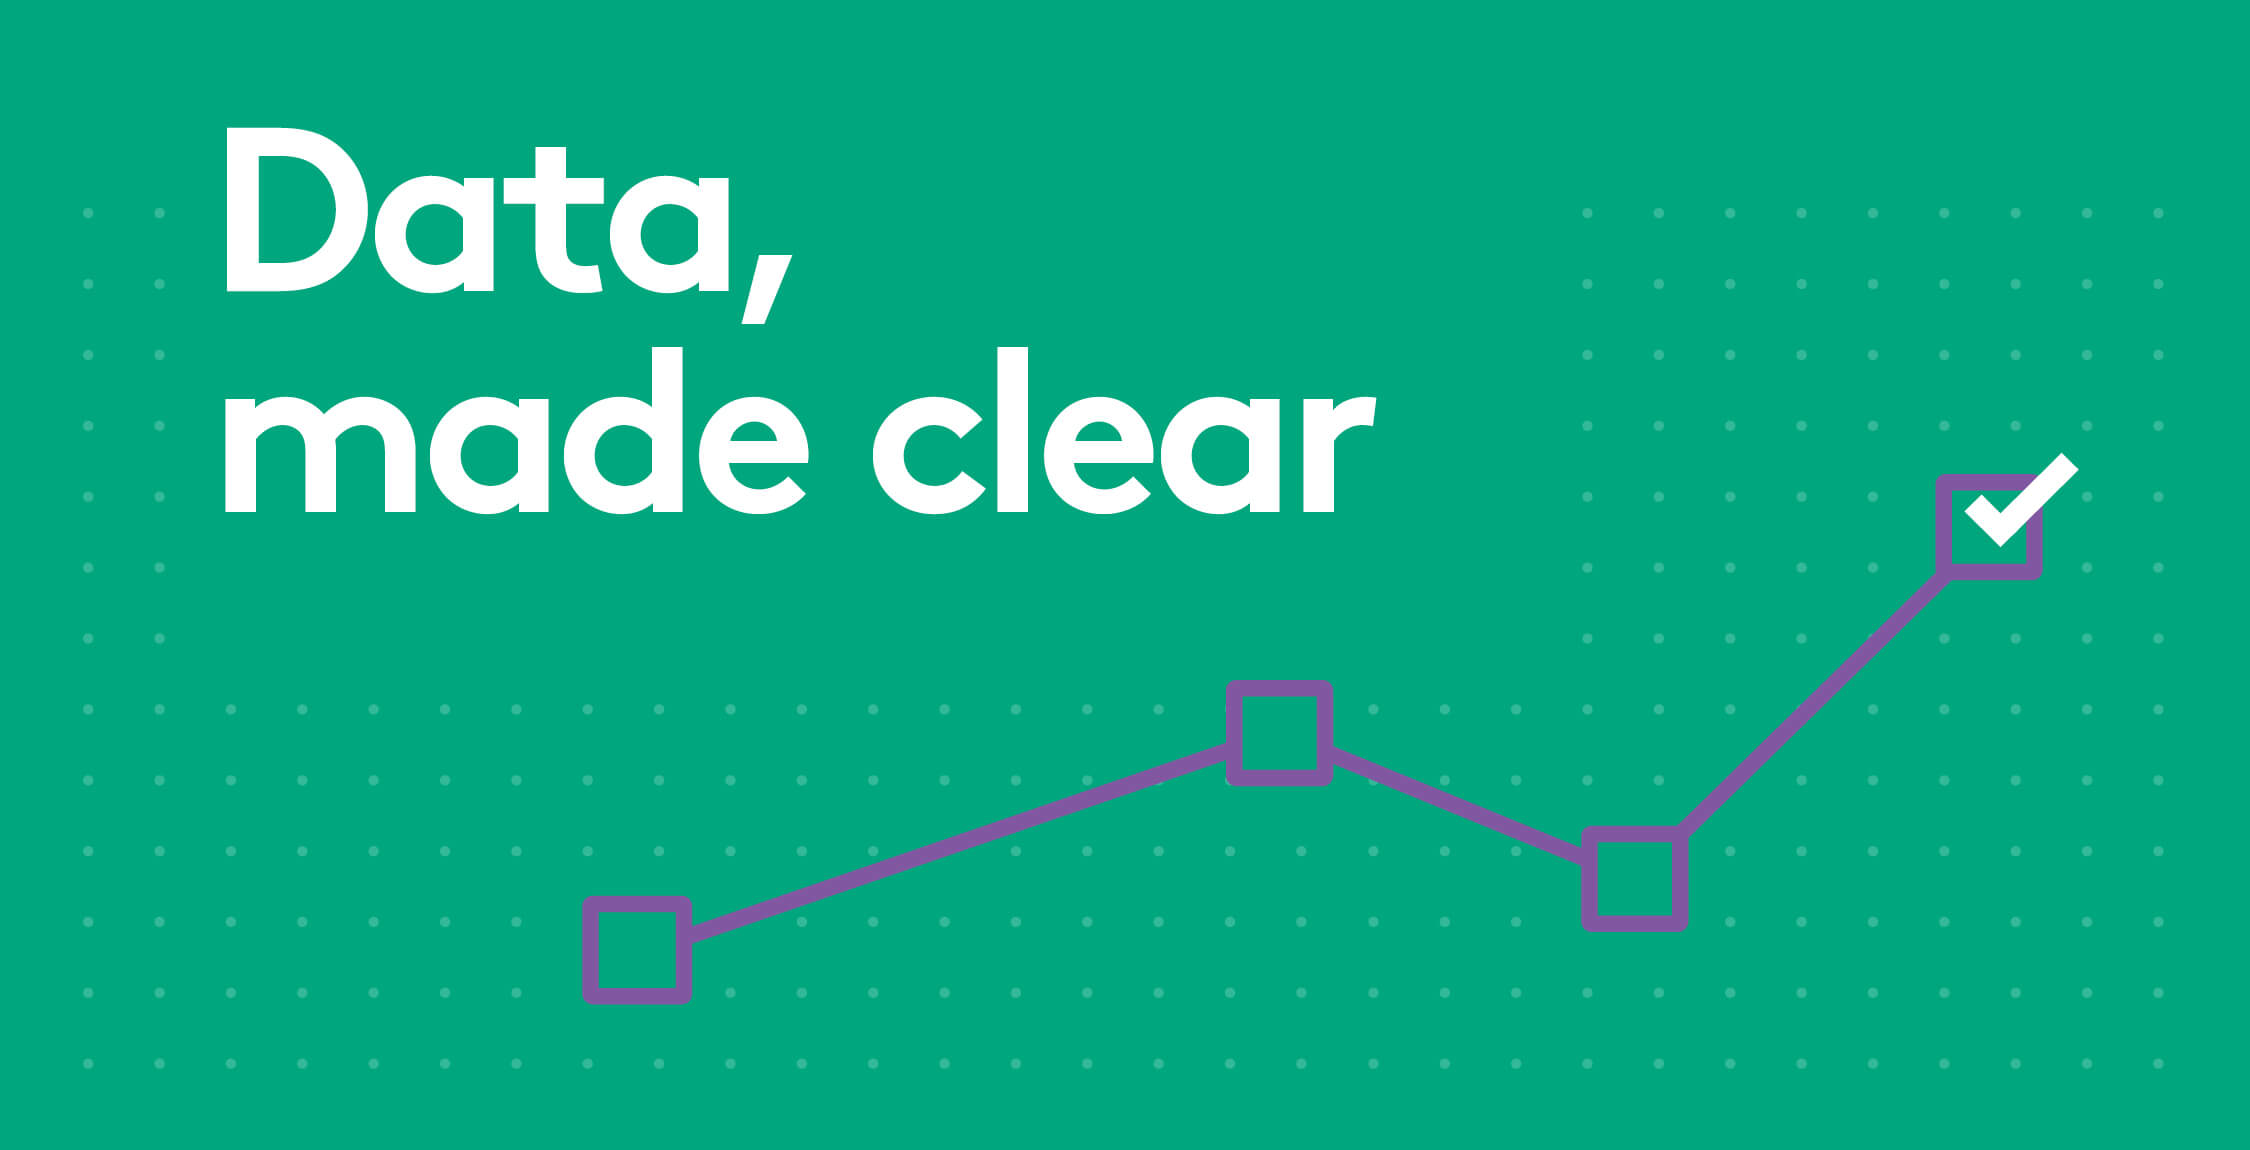 Creating clear insight from heavy data